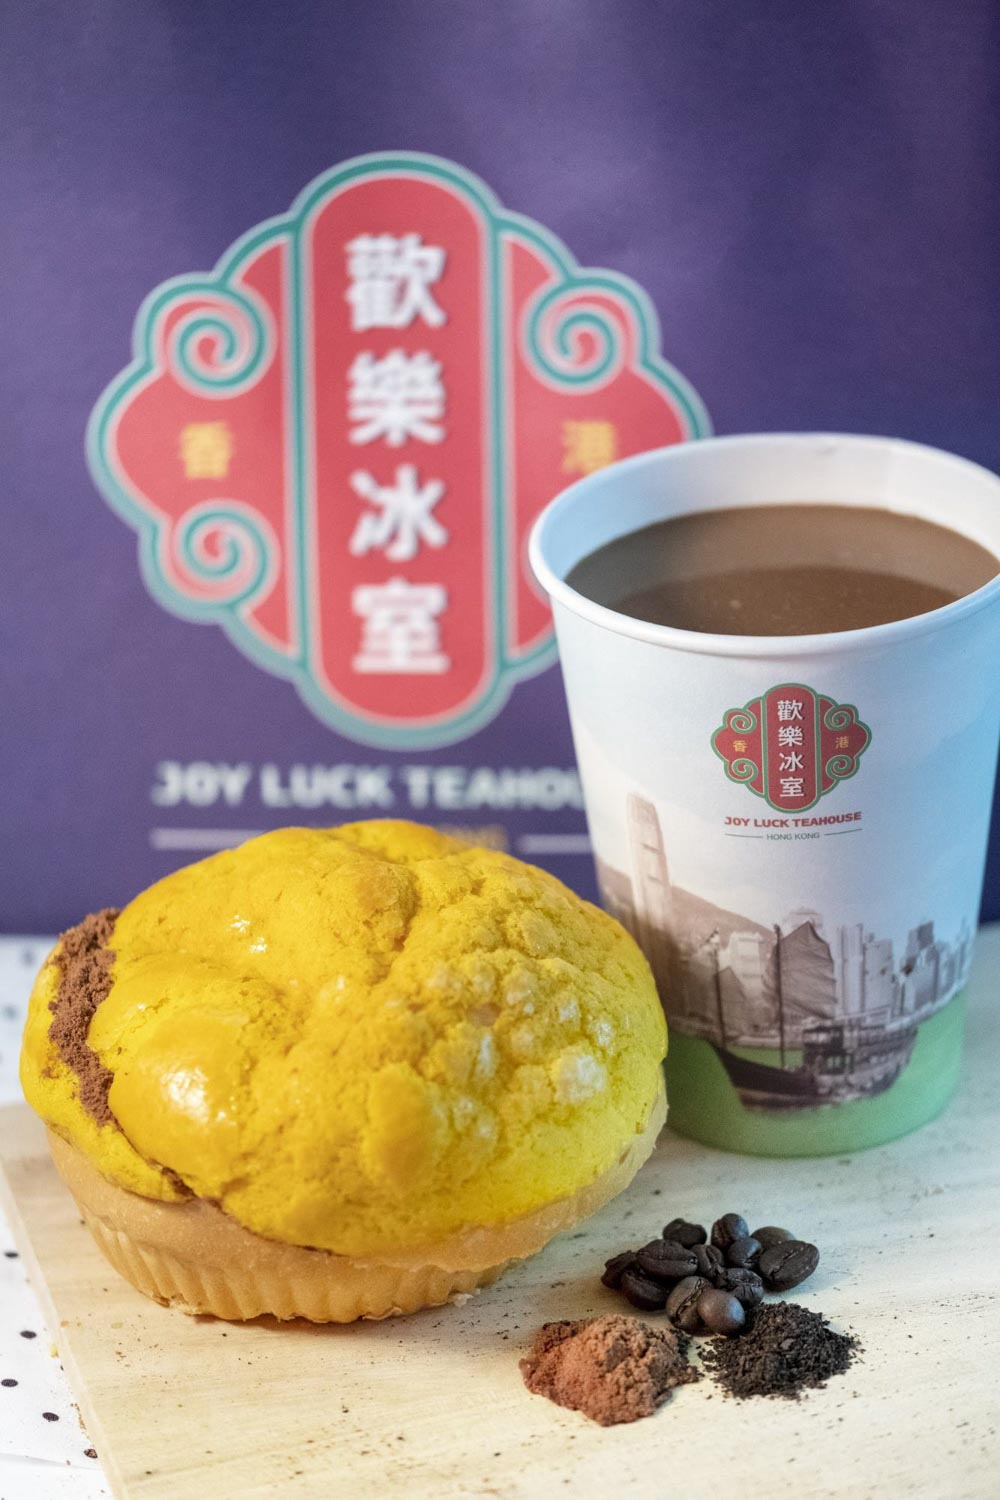 joy luck teahouse - woodlands outlet